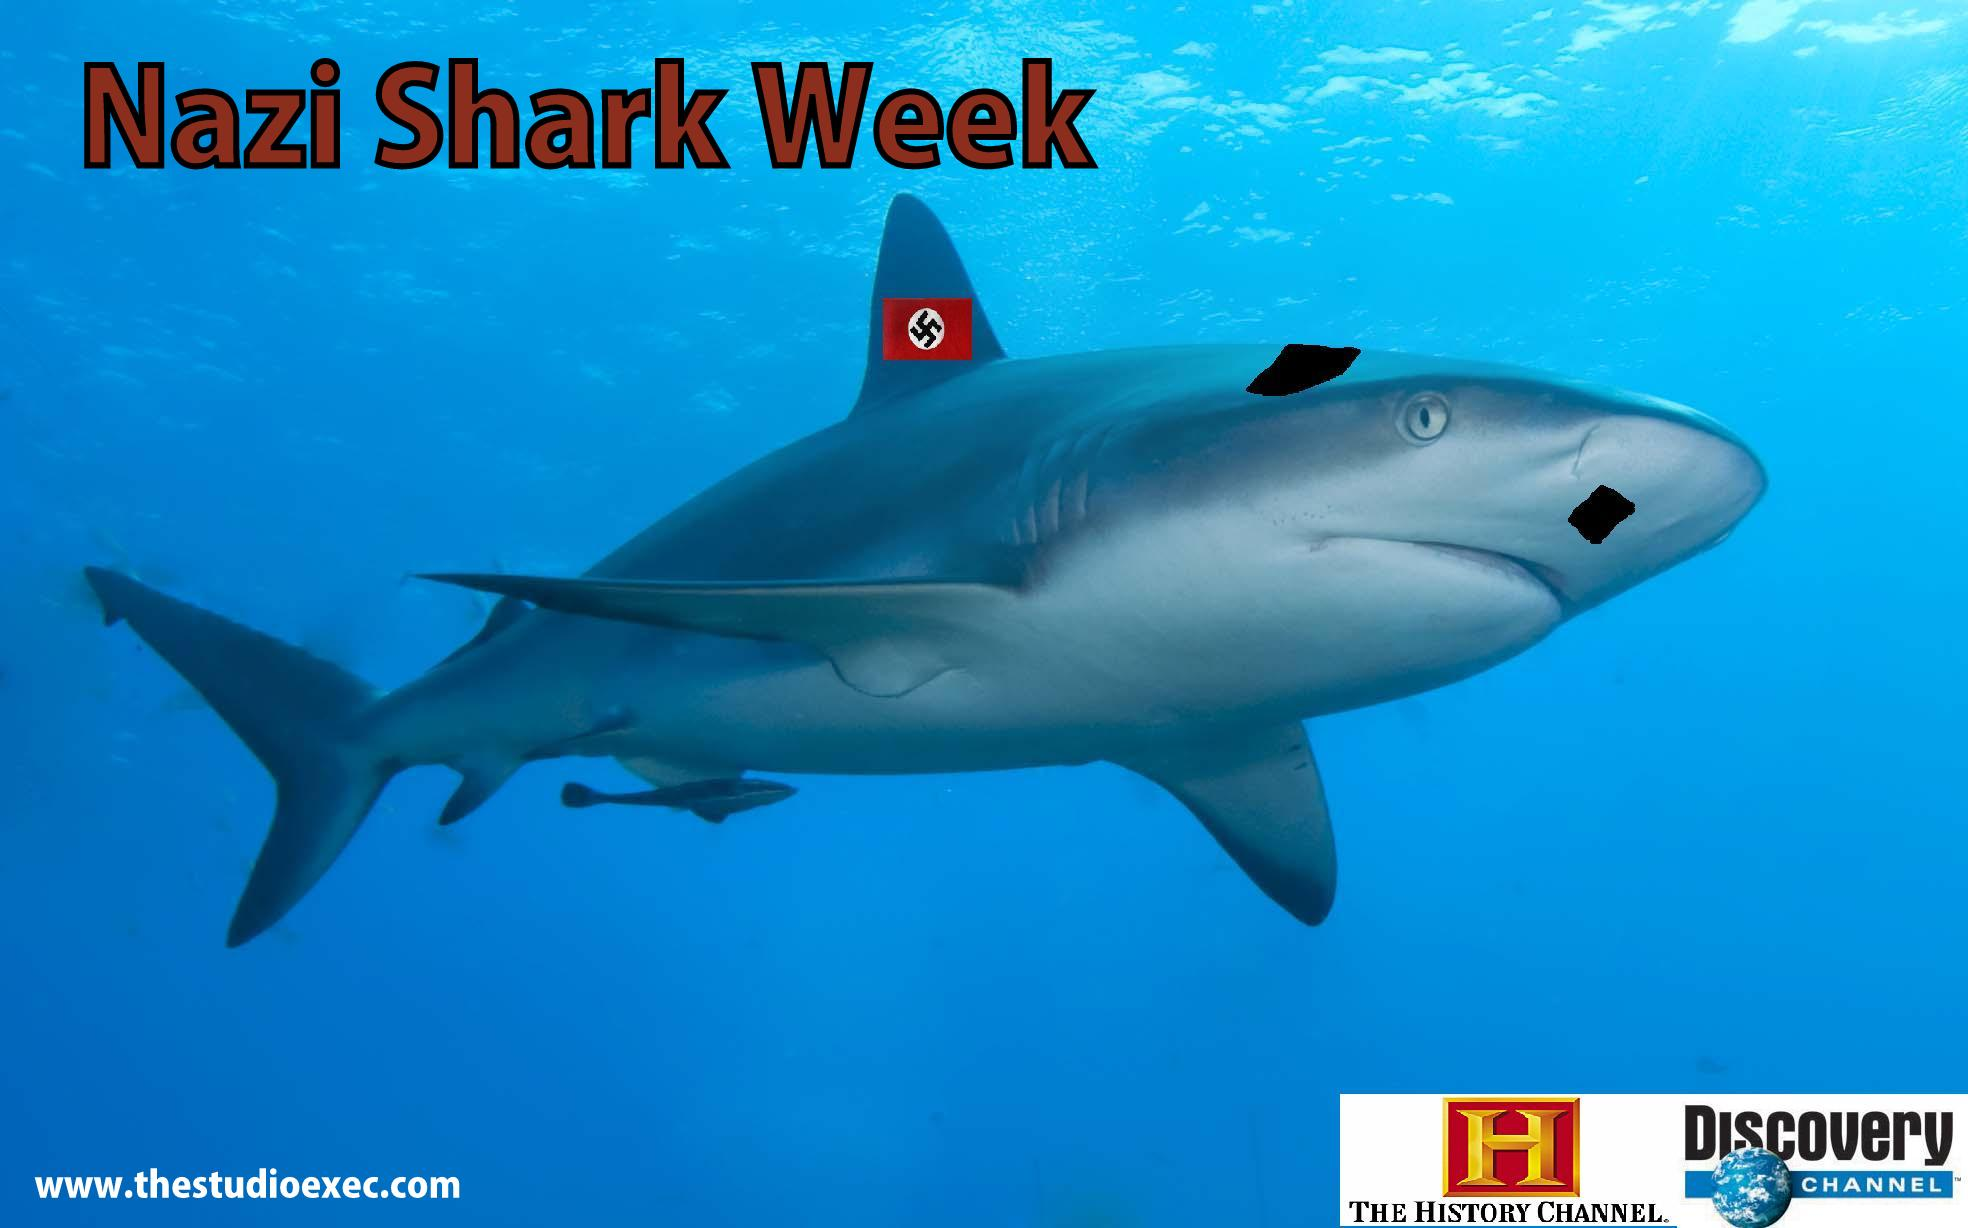 HISTORY AND DISCOVERY CHANNELS HOST NAZI SHARK WEEK